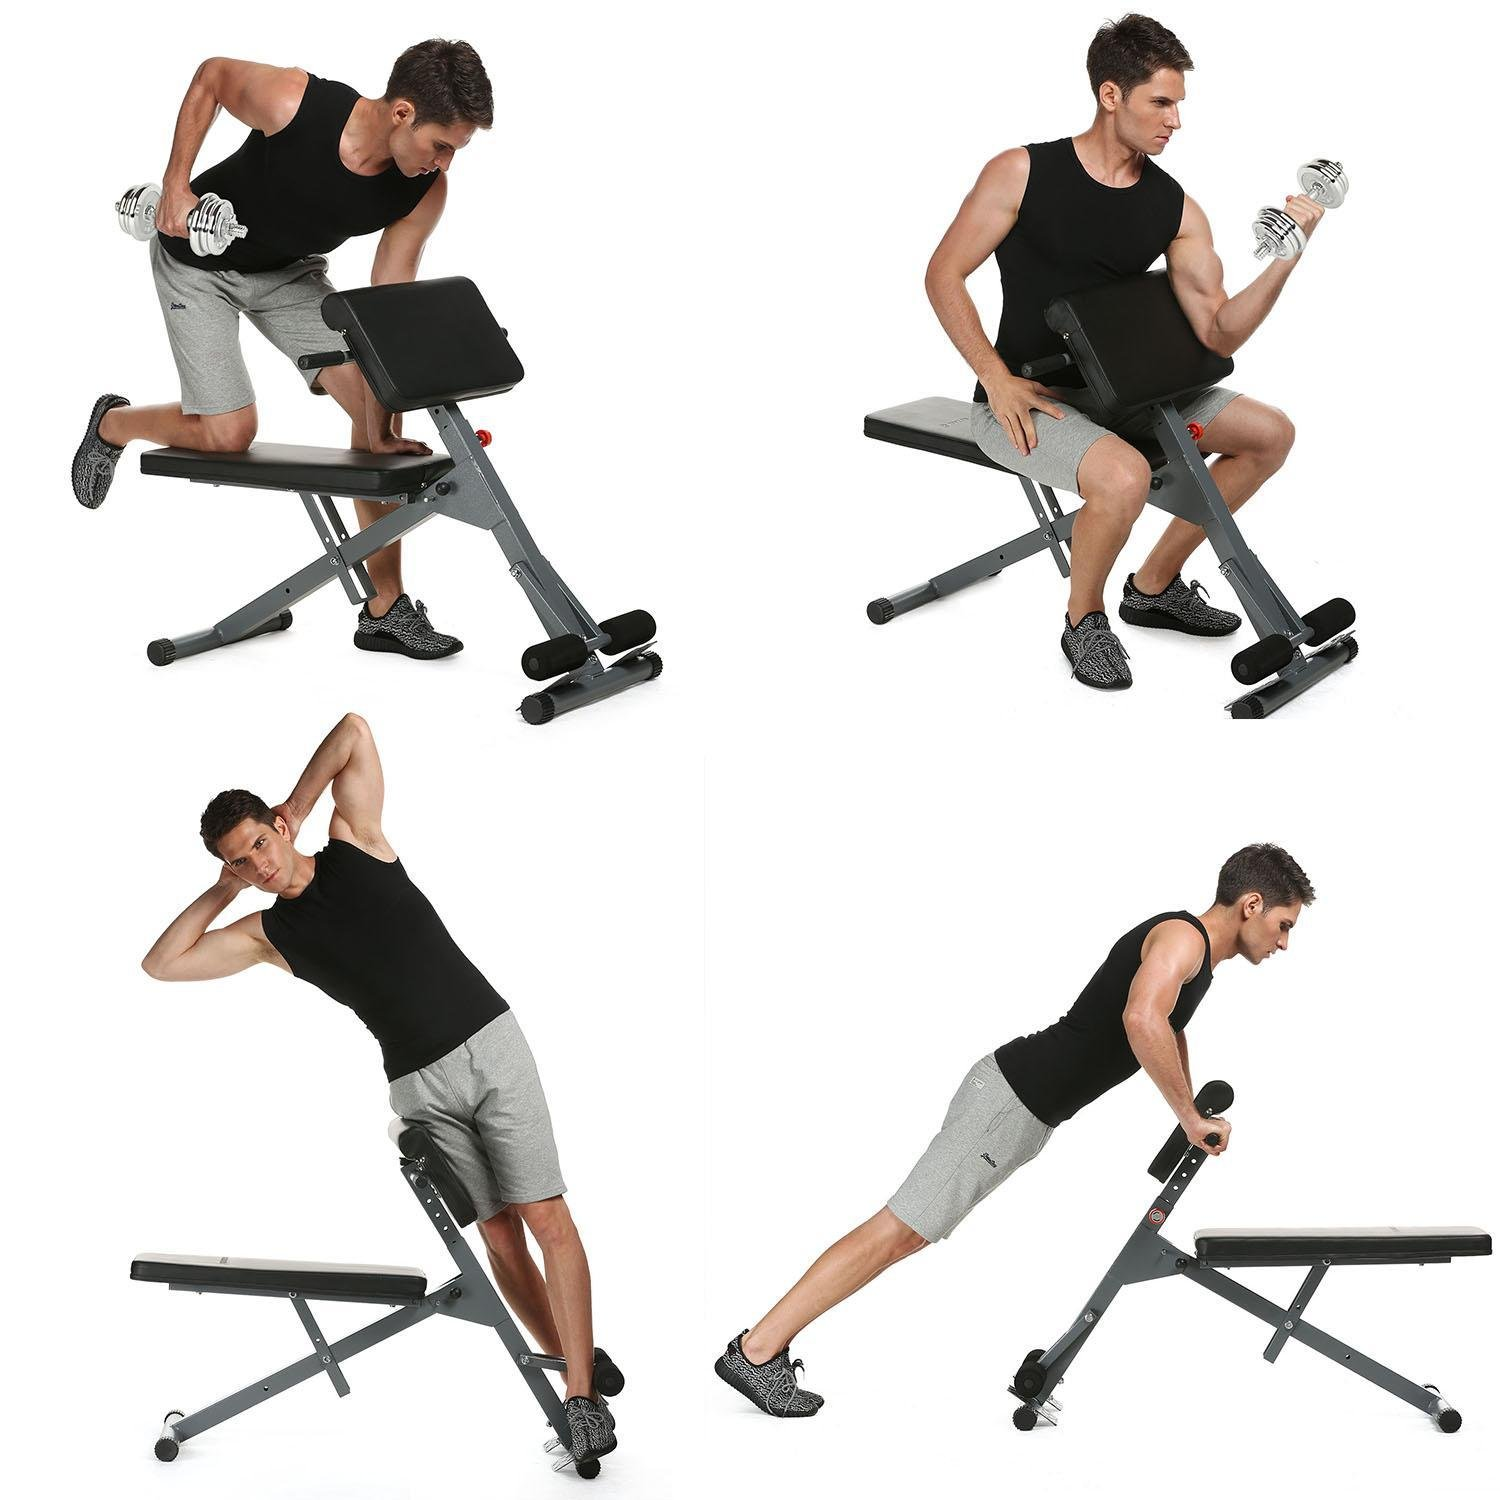 (US STOCK)Adjustable Hyperextension Dumbbell Bench, Pro AB Back Abdominal Extension Roman Chair Fitness Bench Gym Exercise